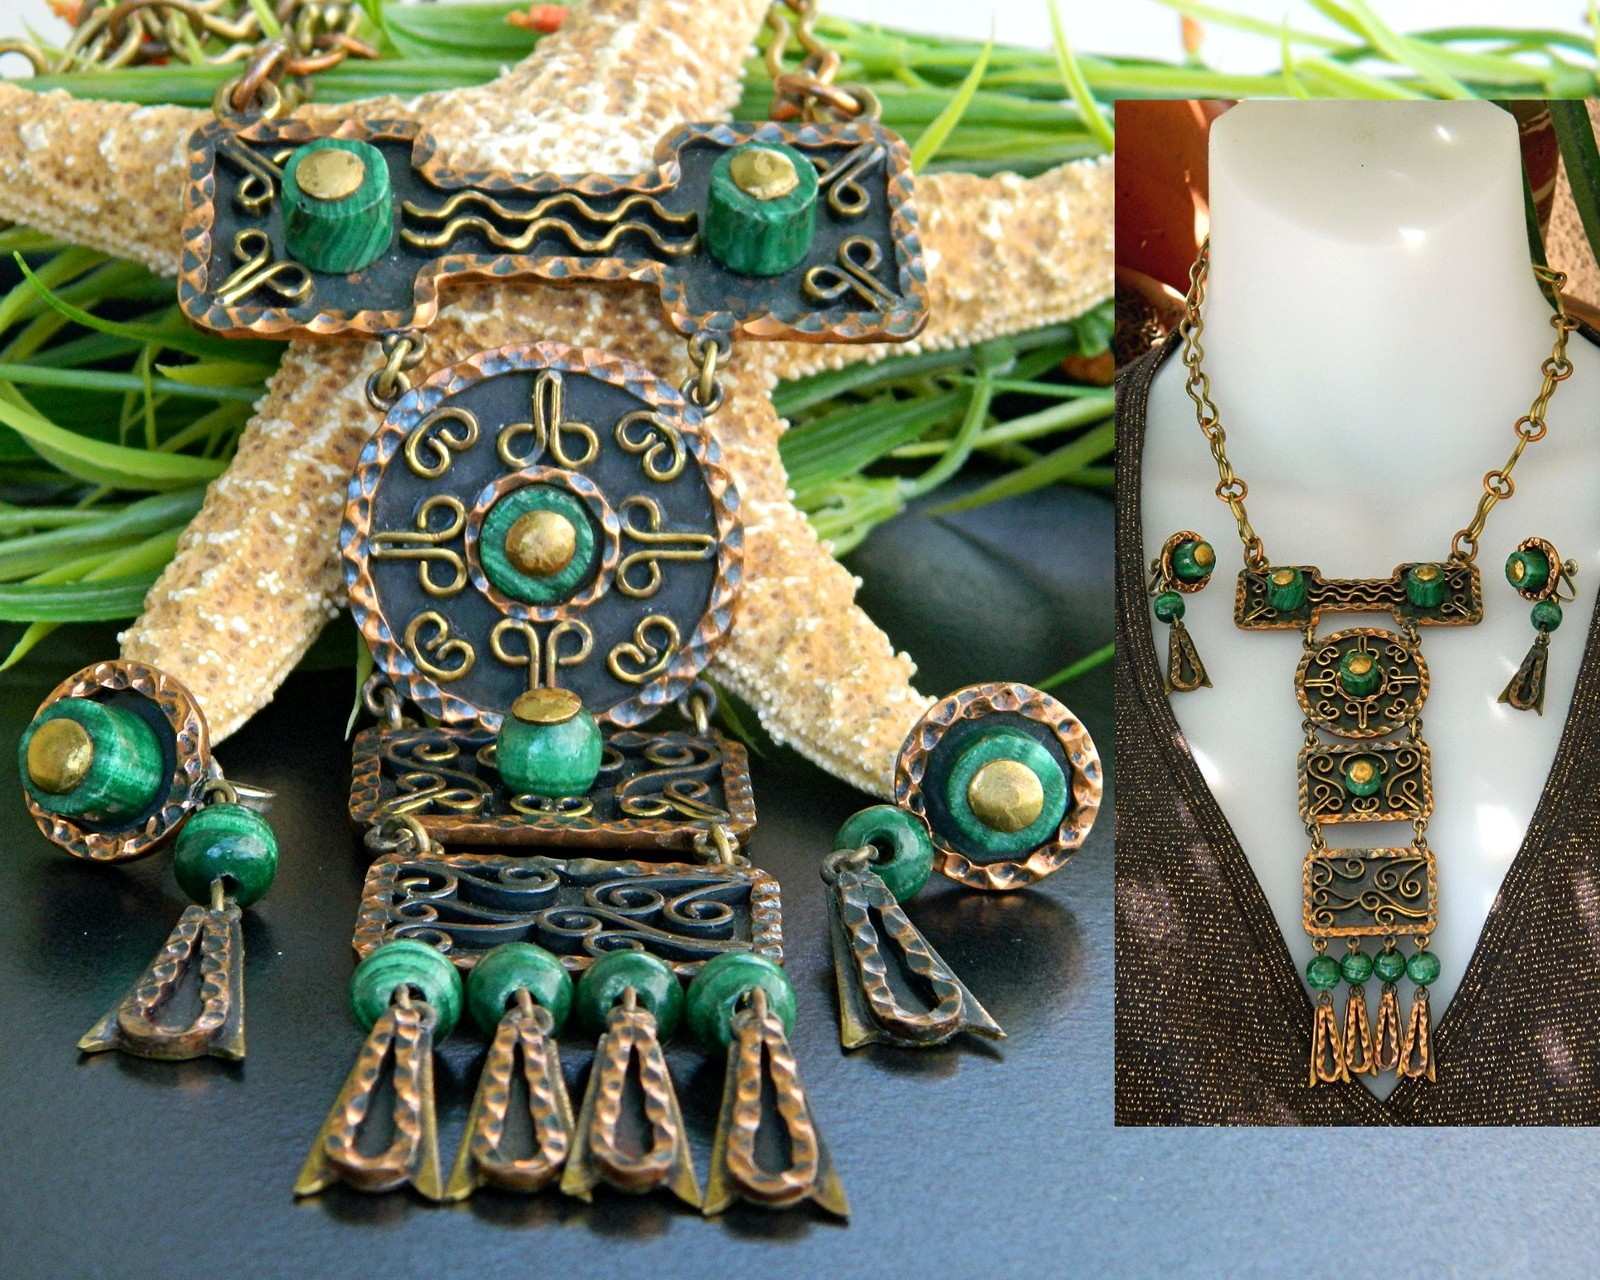 Vintage casa maya mexico necklace earrings mixed metal set signed